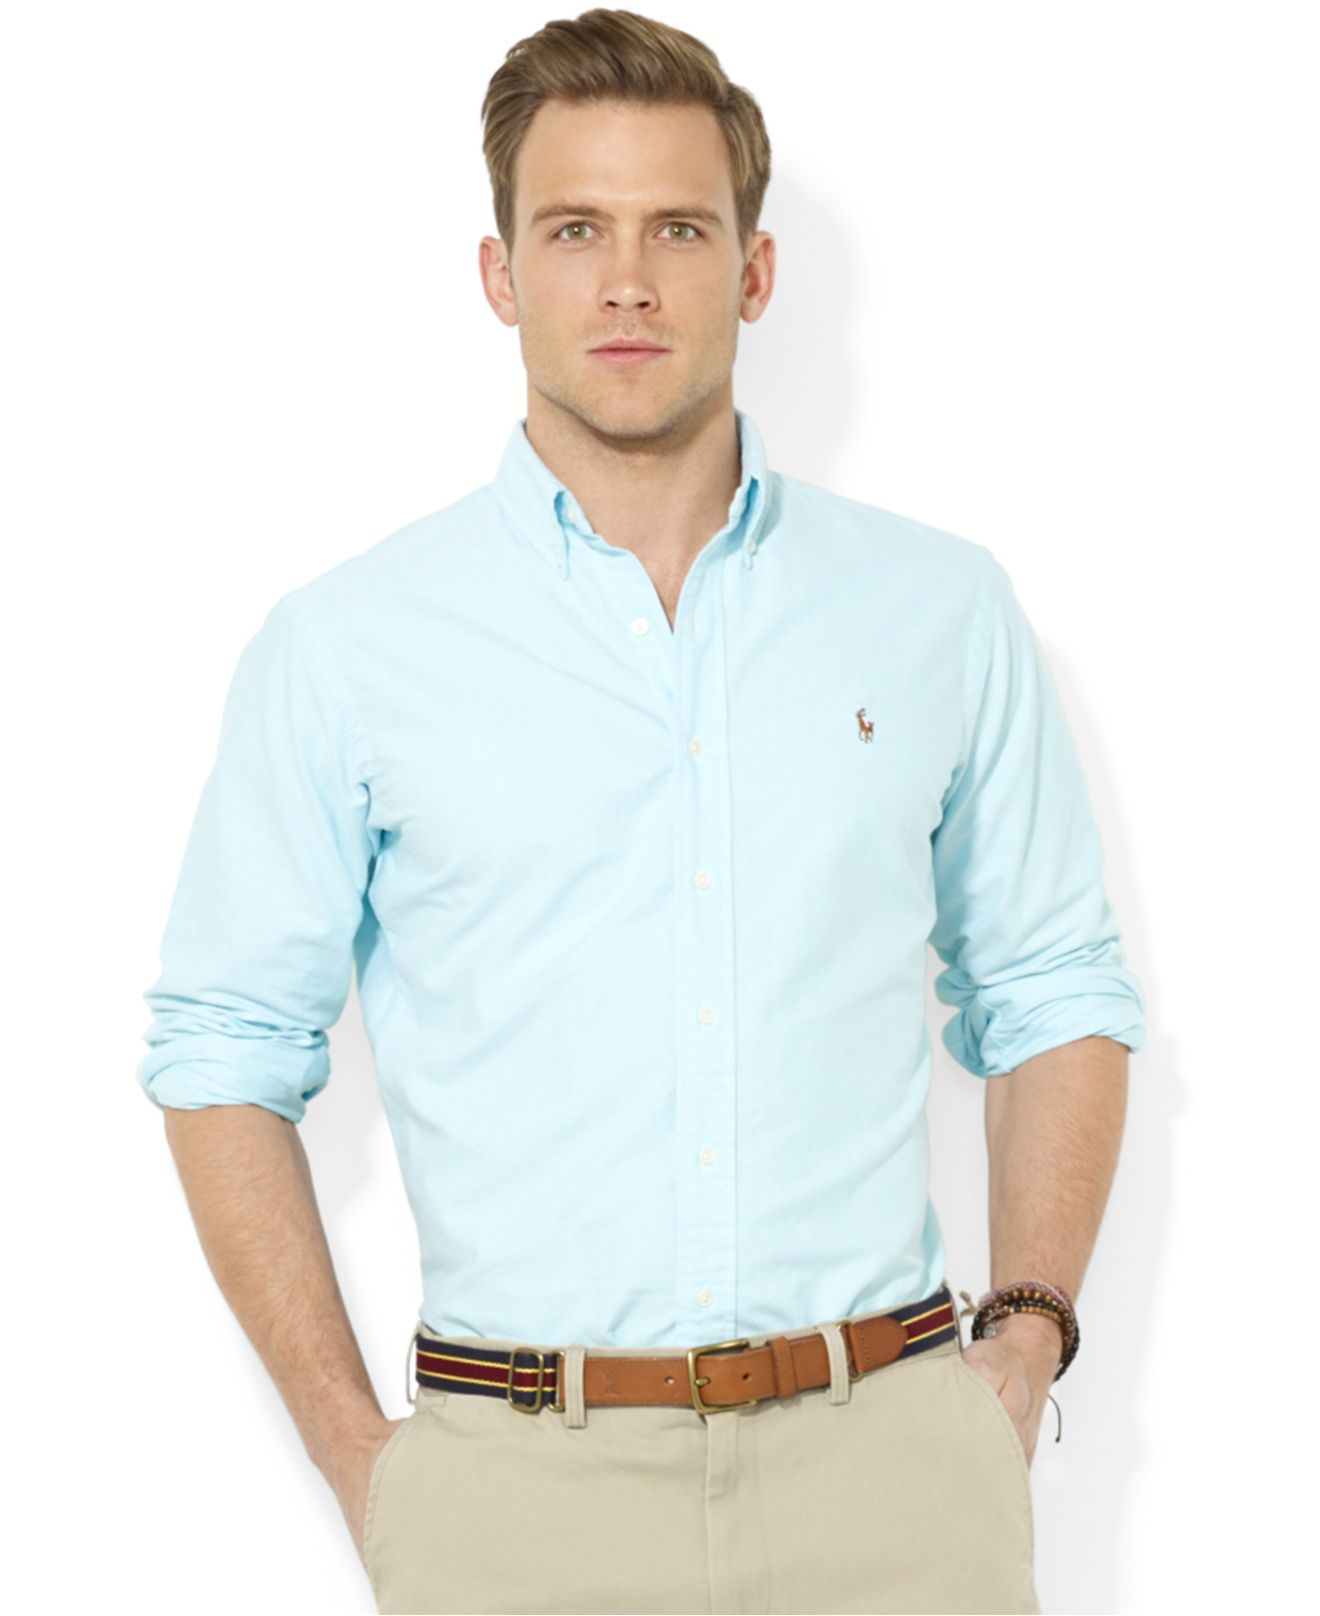 69296eb9 Polo Ralph Lauren Core Classic-Fit Solid Oxford Shirt in Blue for ...